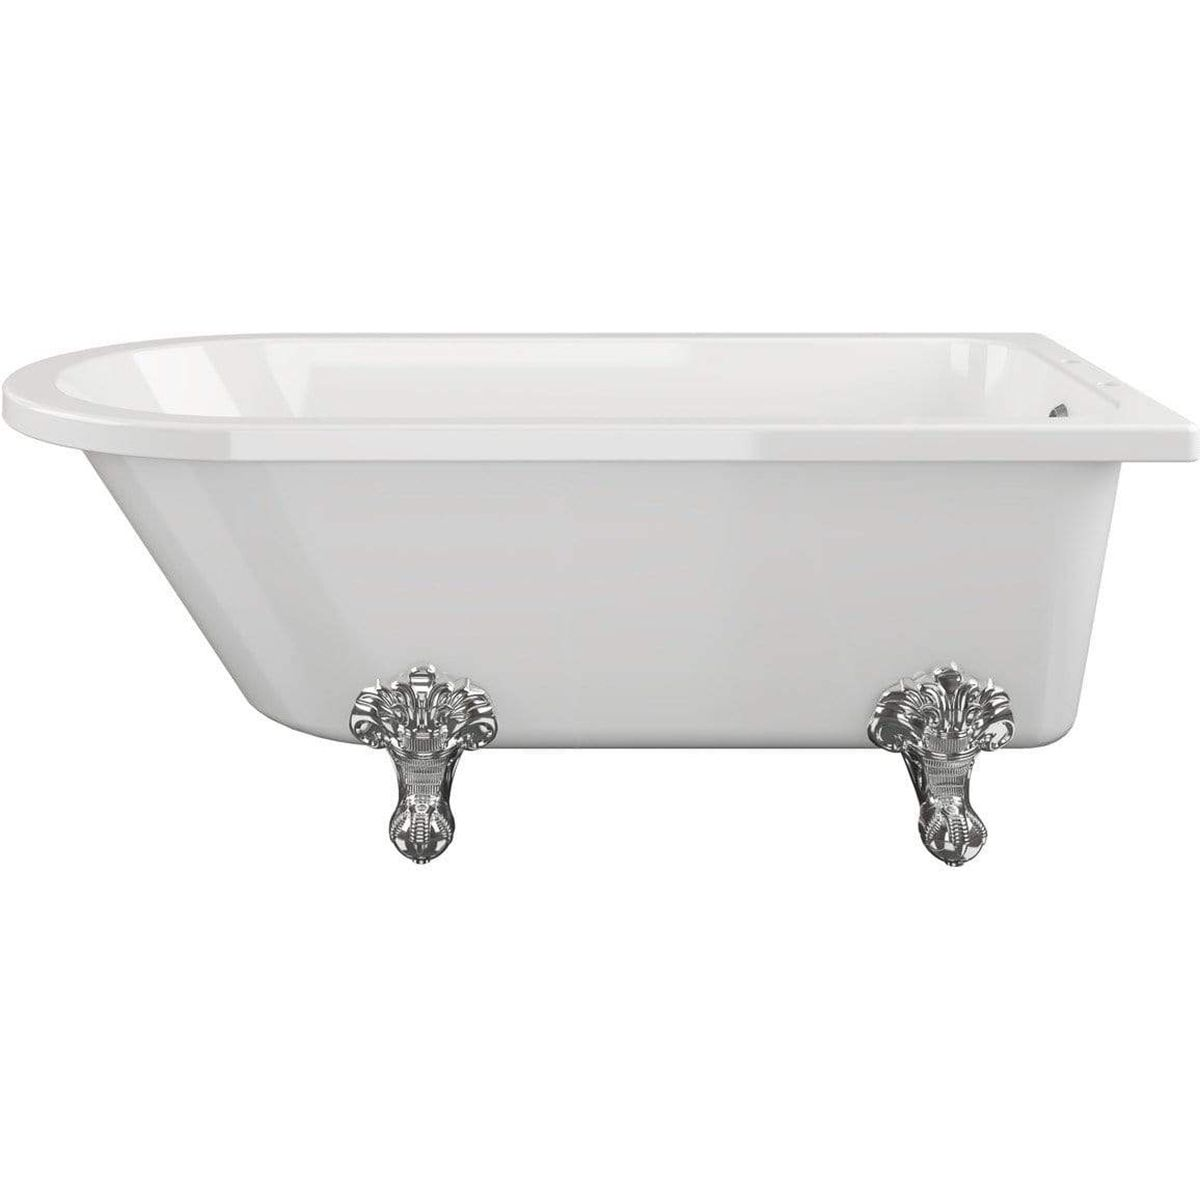 Bathrooms To Love Traditional Corner Freestanding Bath with Feet 1700mm x 750mm